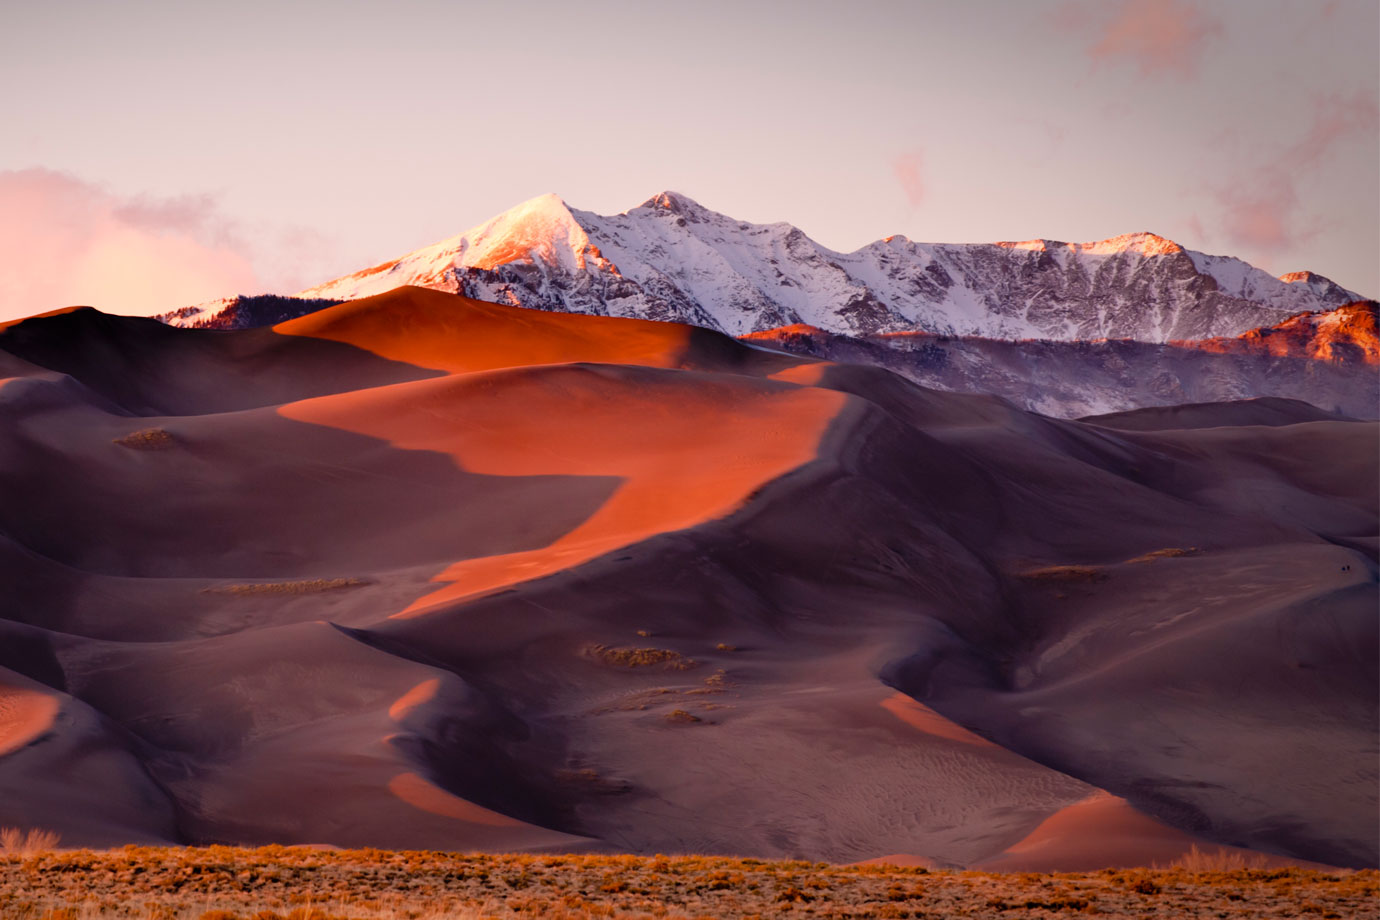 Sand dunes and mountain peaks